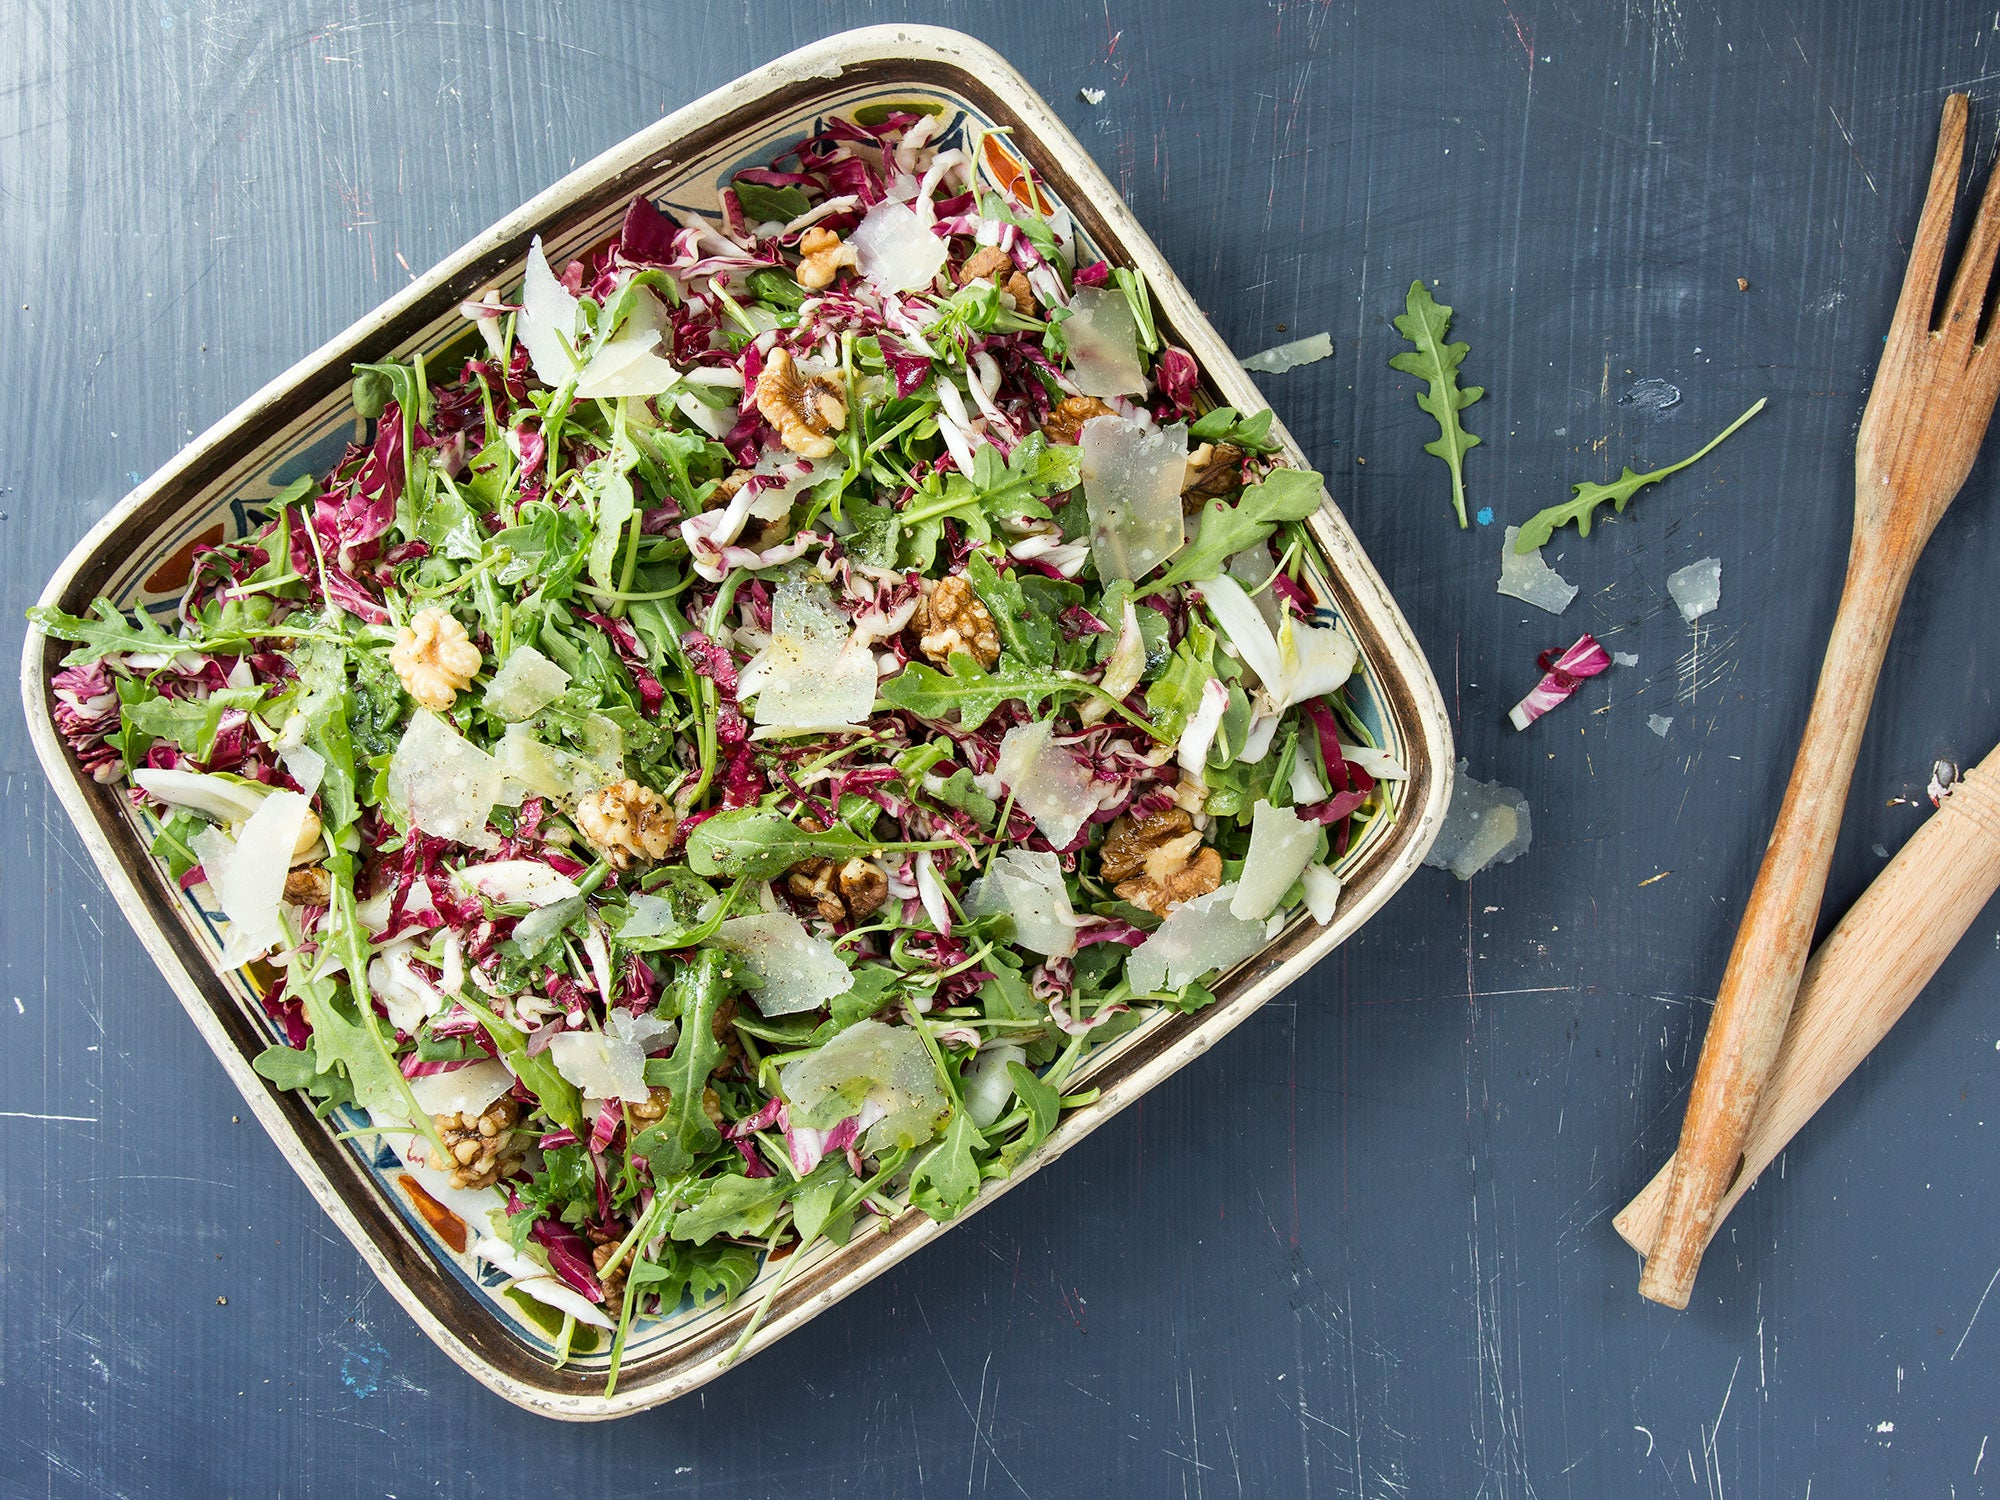 Arugula, Radicchio, and Fennel Salad